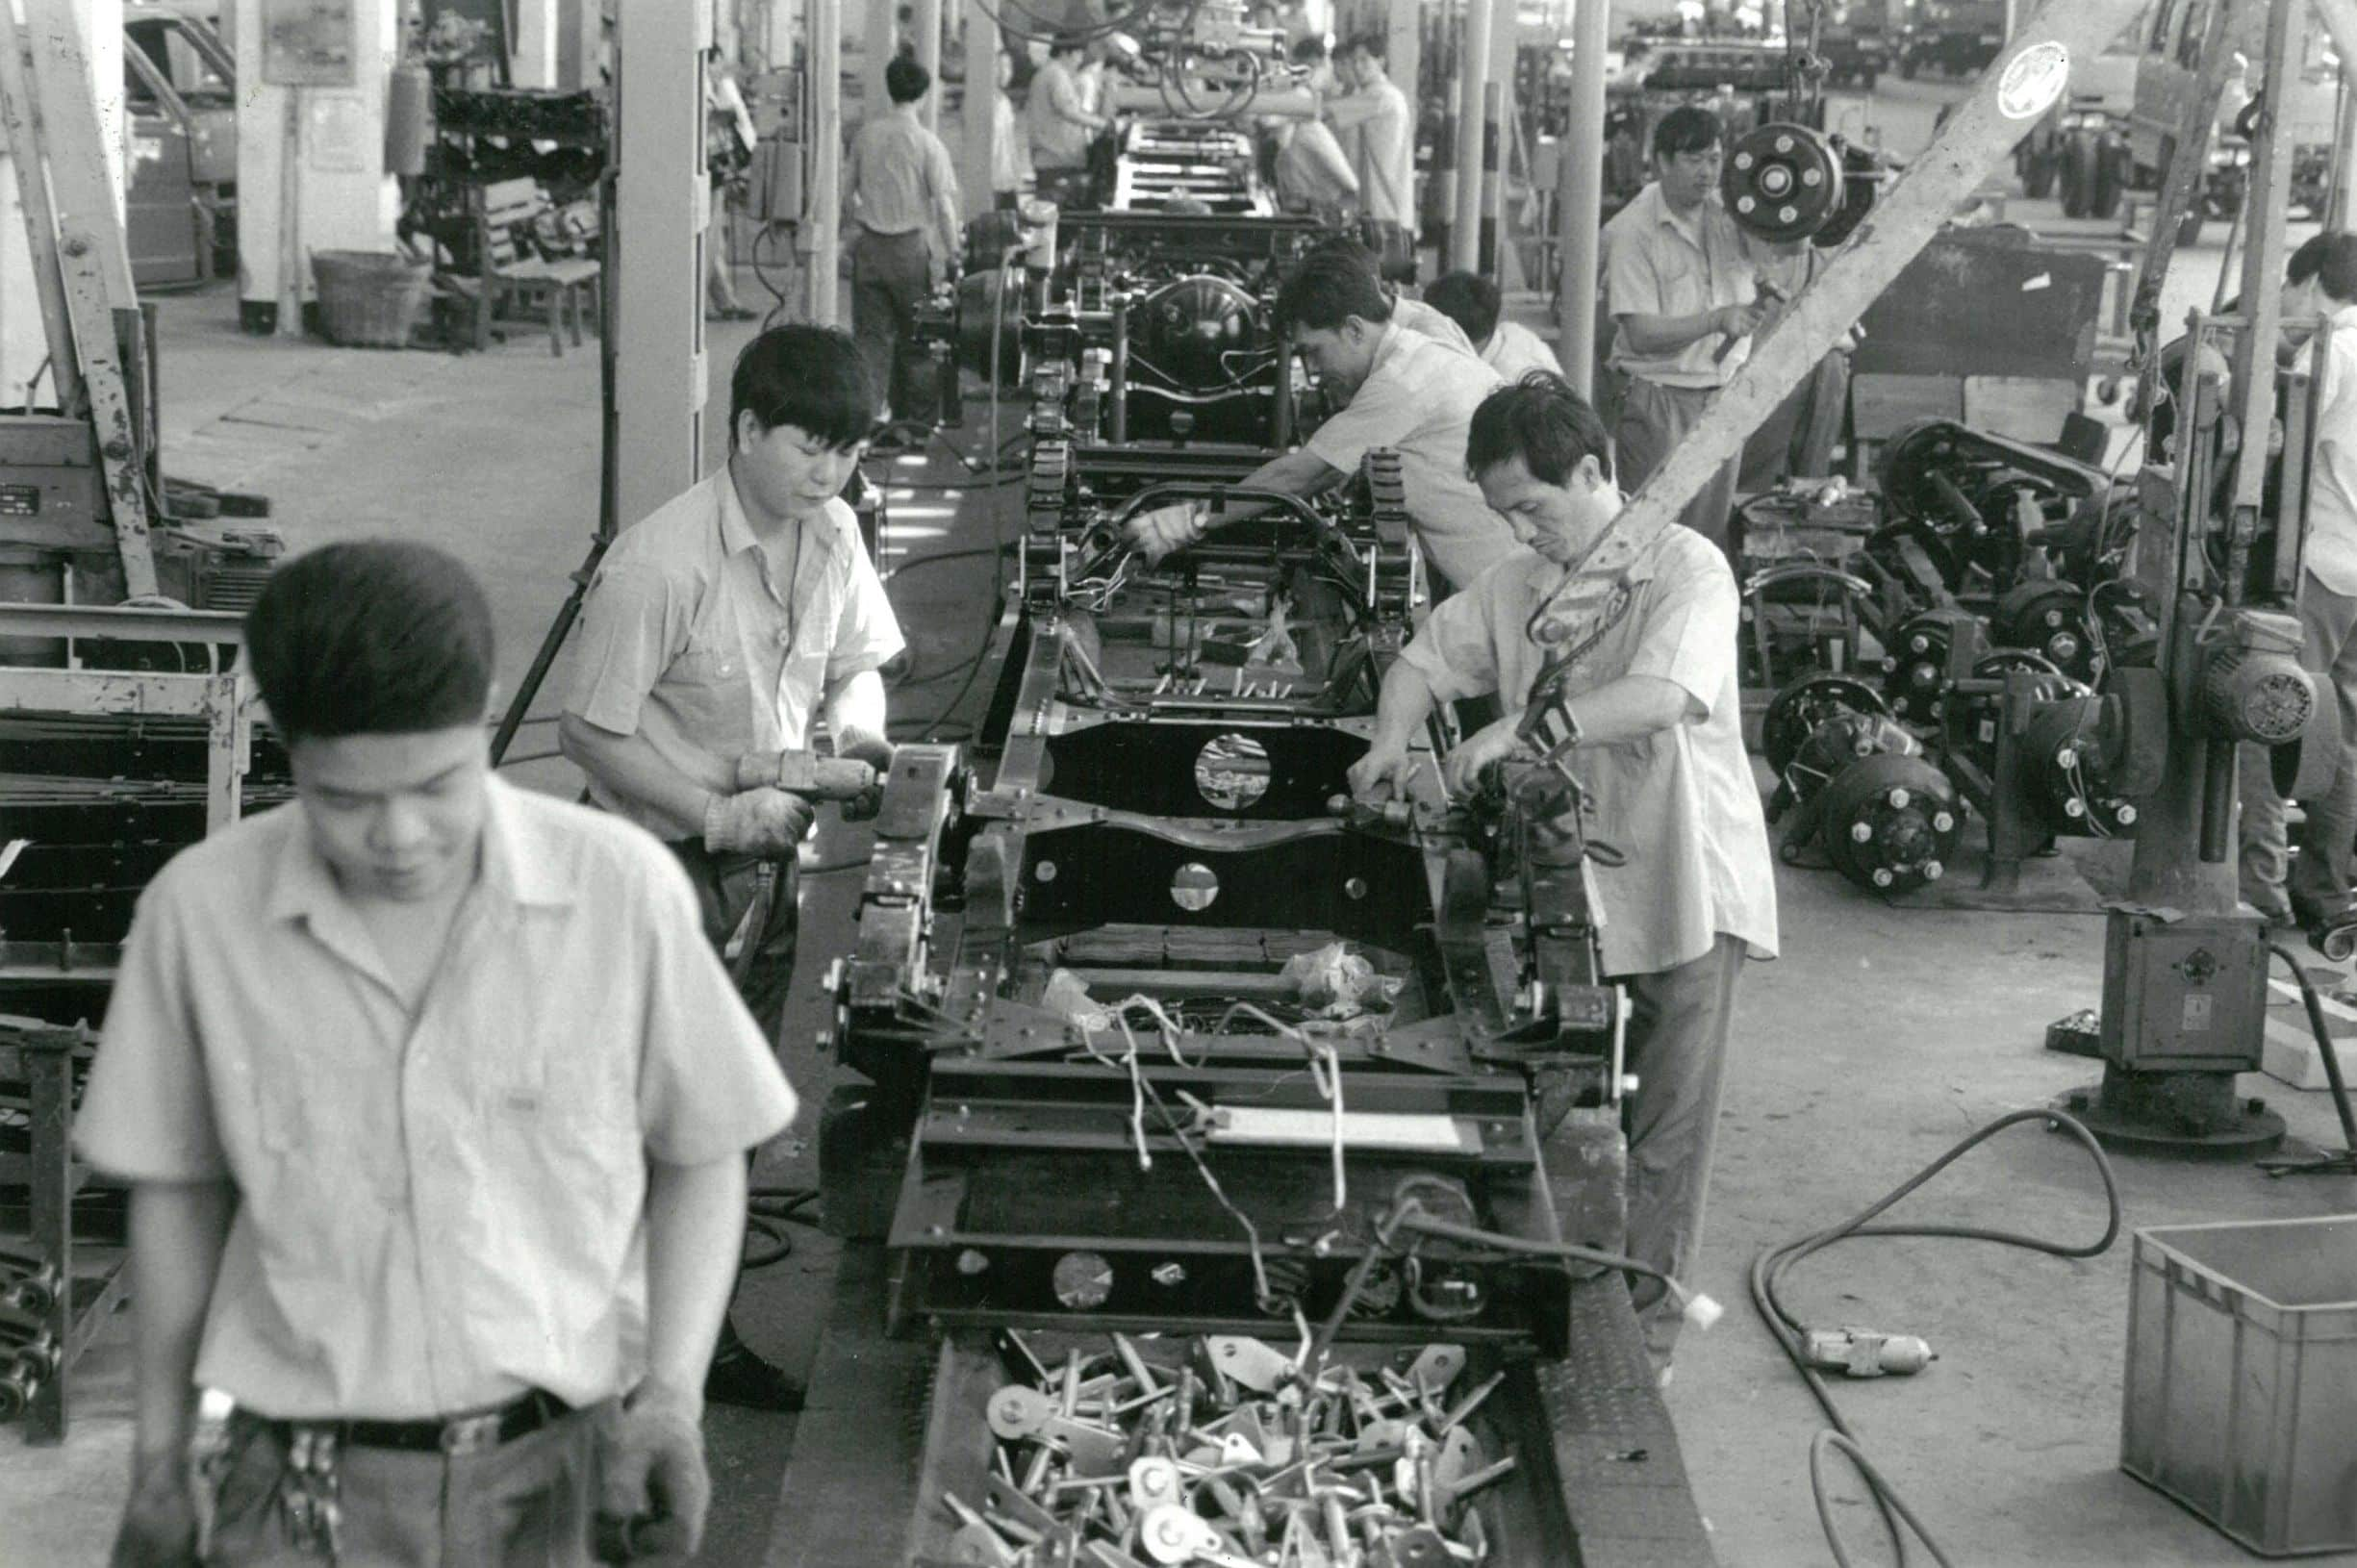 Workers in car factory, Guangzhou, China. Photo: ILO Asia-Pacific. (CC BY-NC-ND 3.0 IGO).